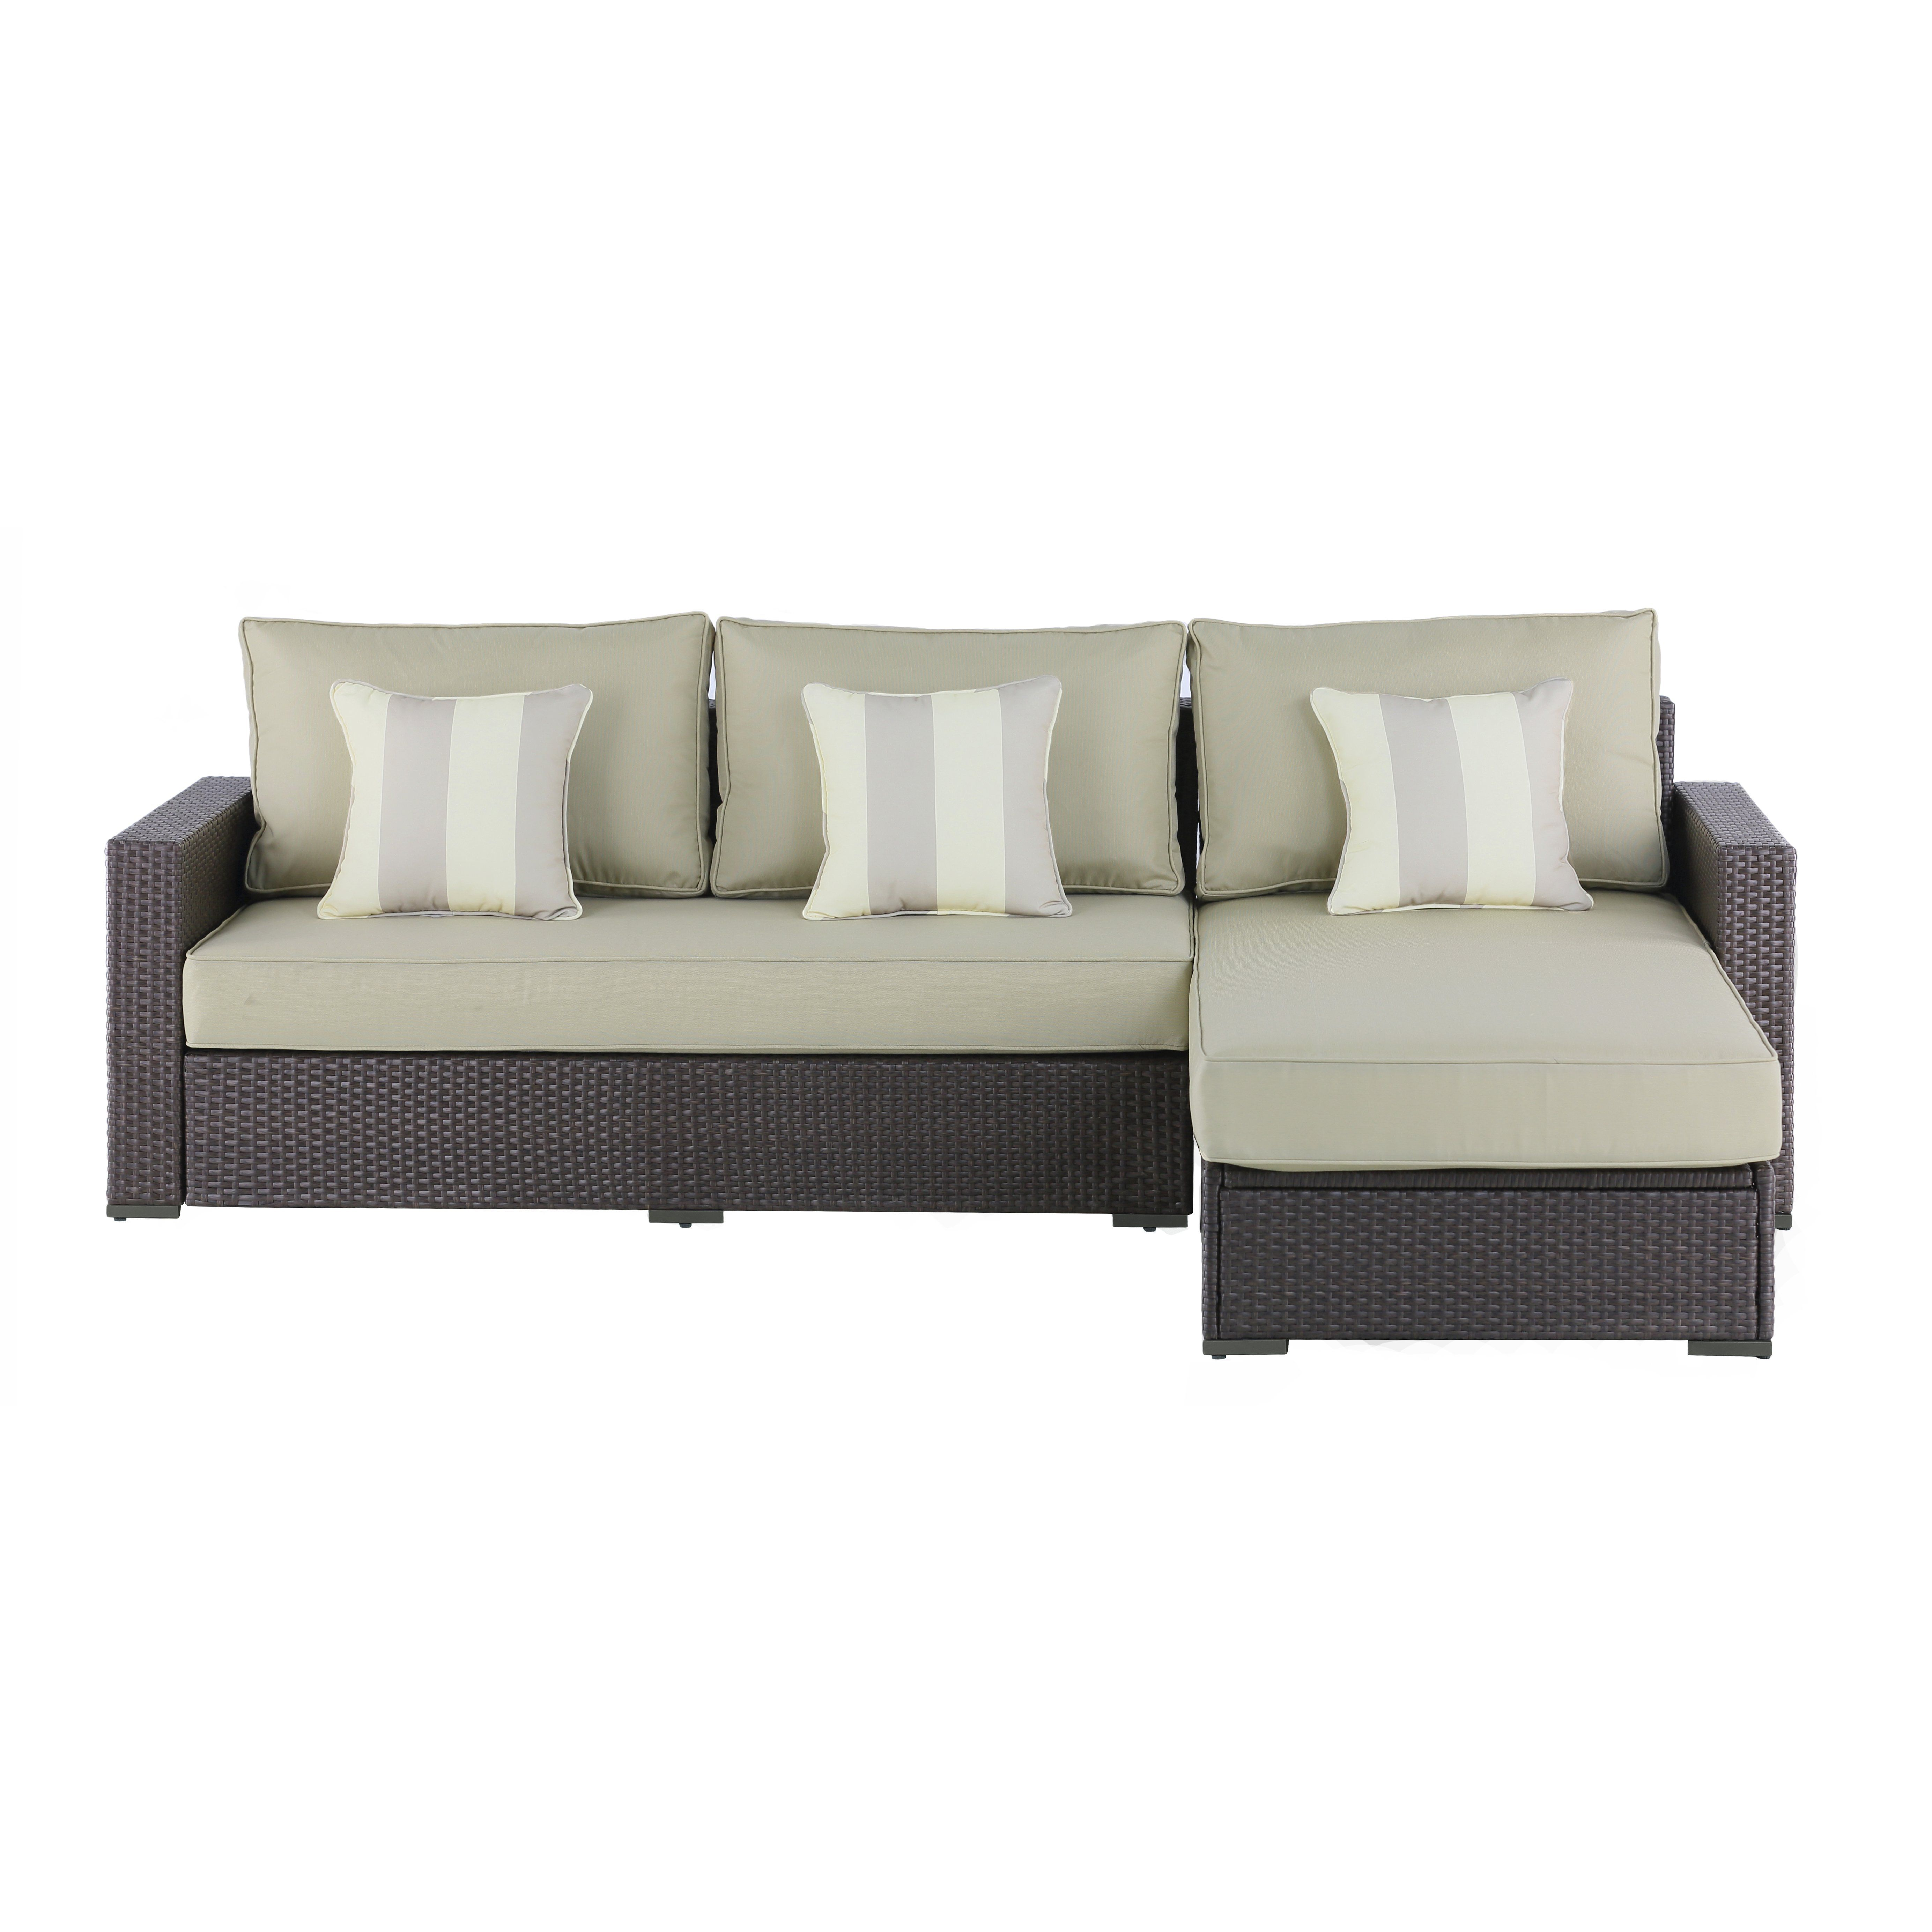 Cool Good Serta Sectional Sofa 27 On Home Remodel Ideas With Serta  Sectional Sofa